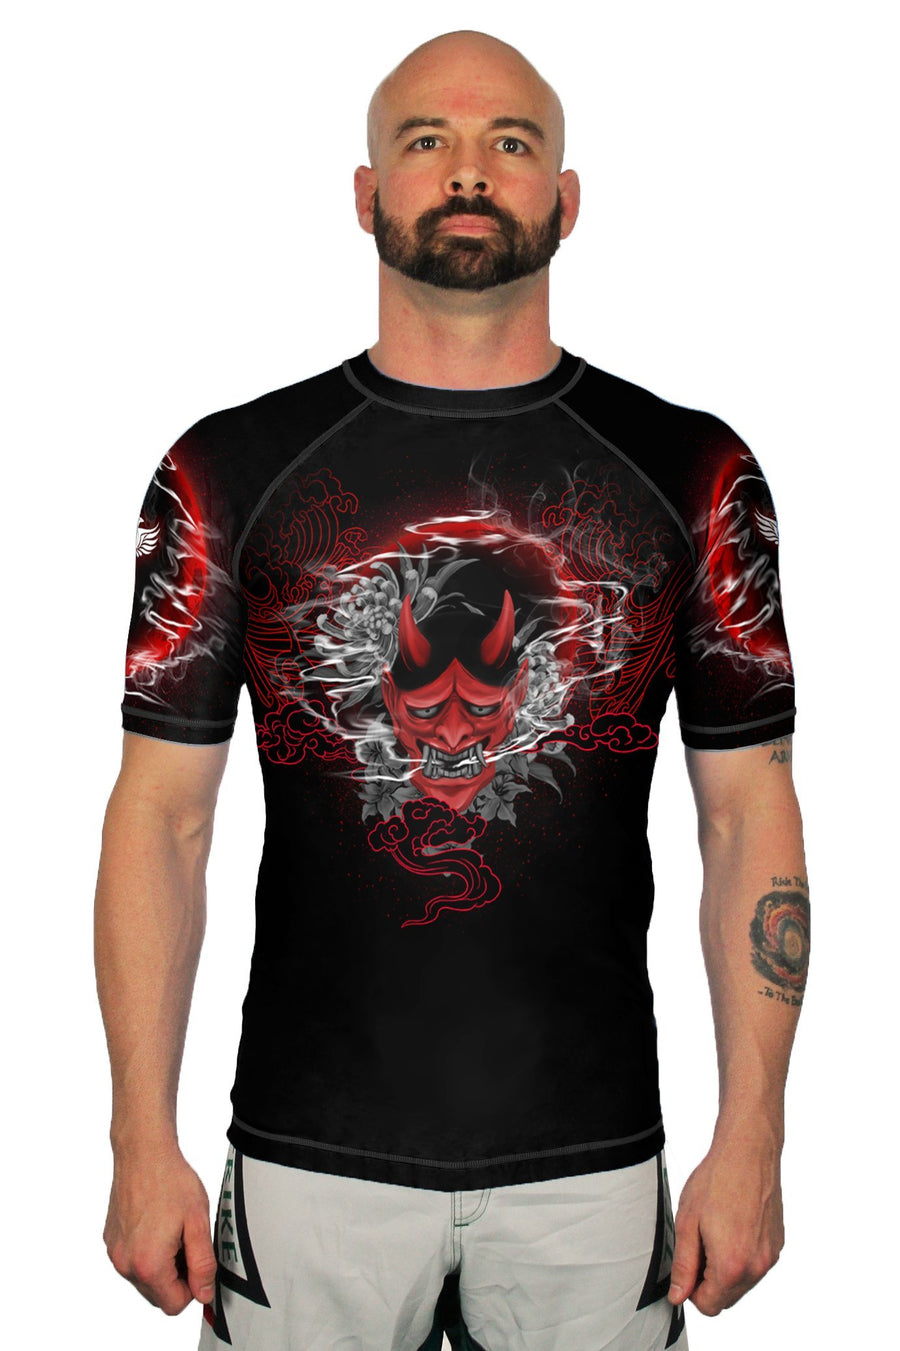 The Illustrated Geisha 2.0 - Raven Fightwear - US